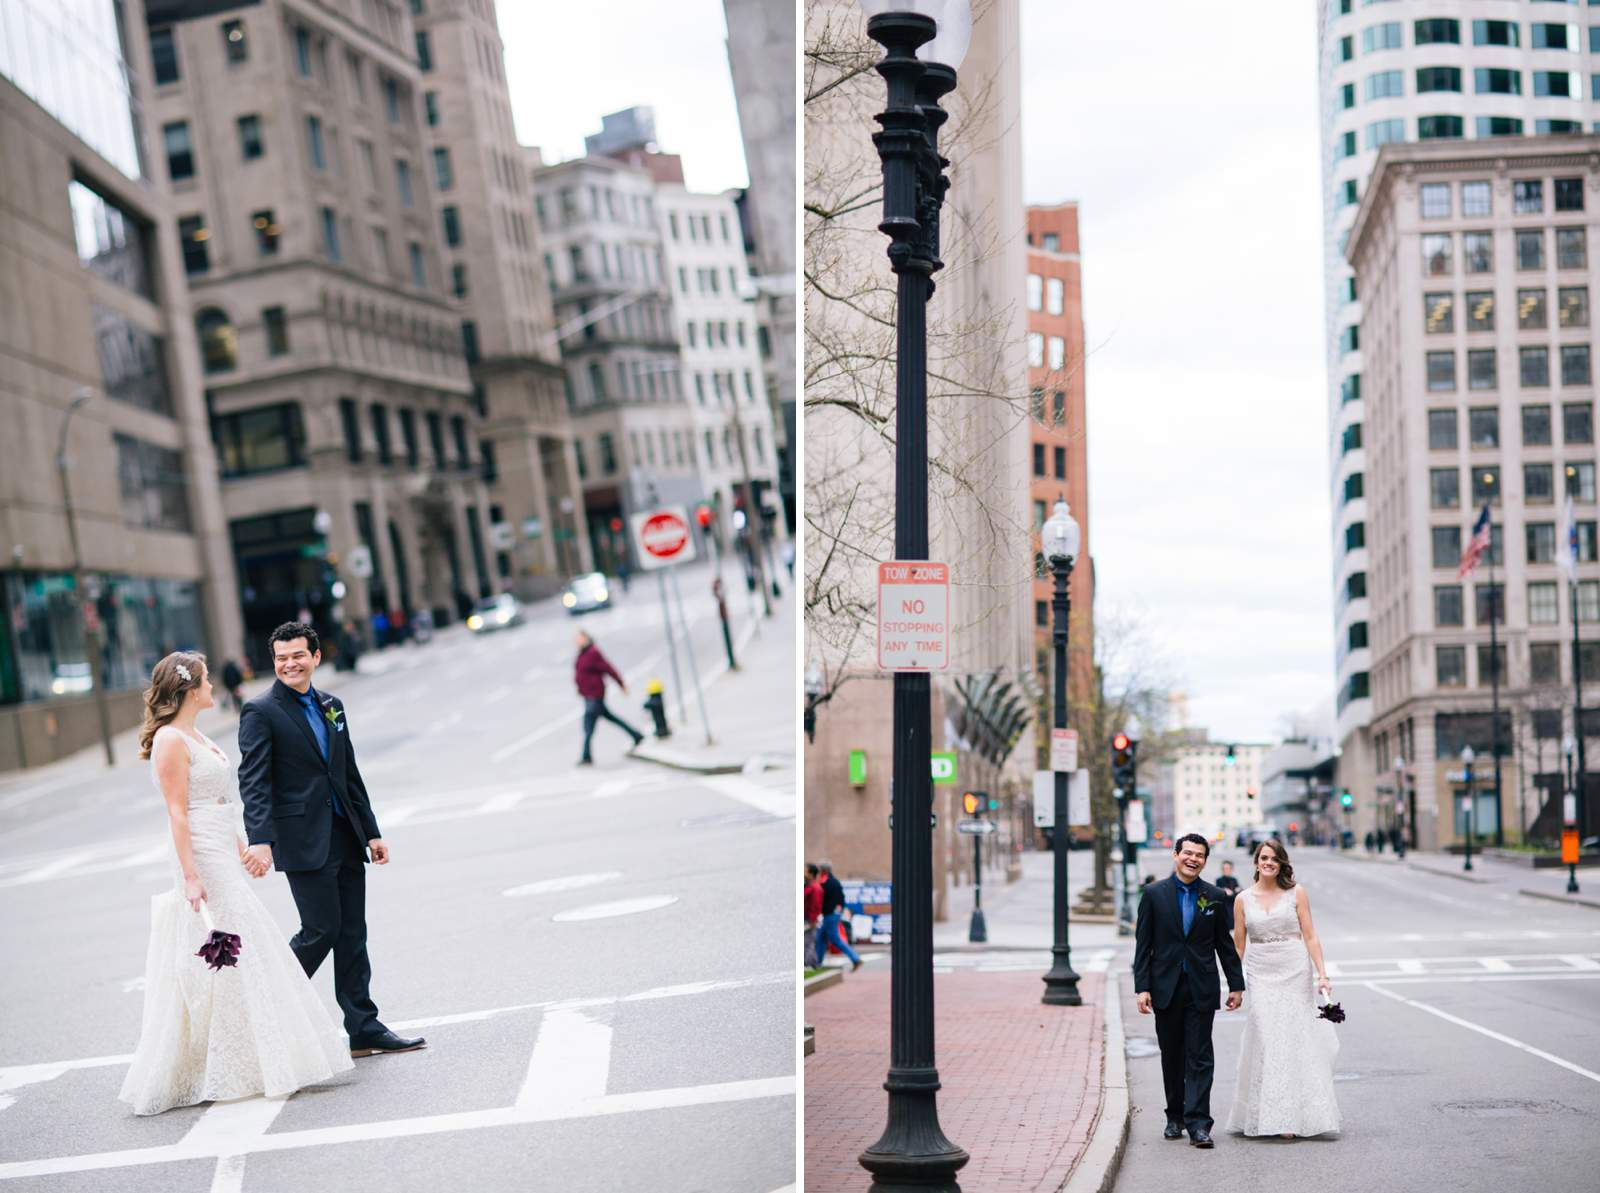 Boston Wedding Photography, getting ready, Langham hotel, groom, bride, first look, portraits